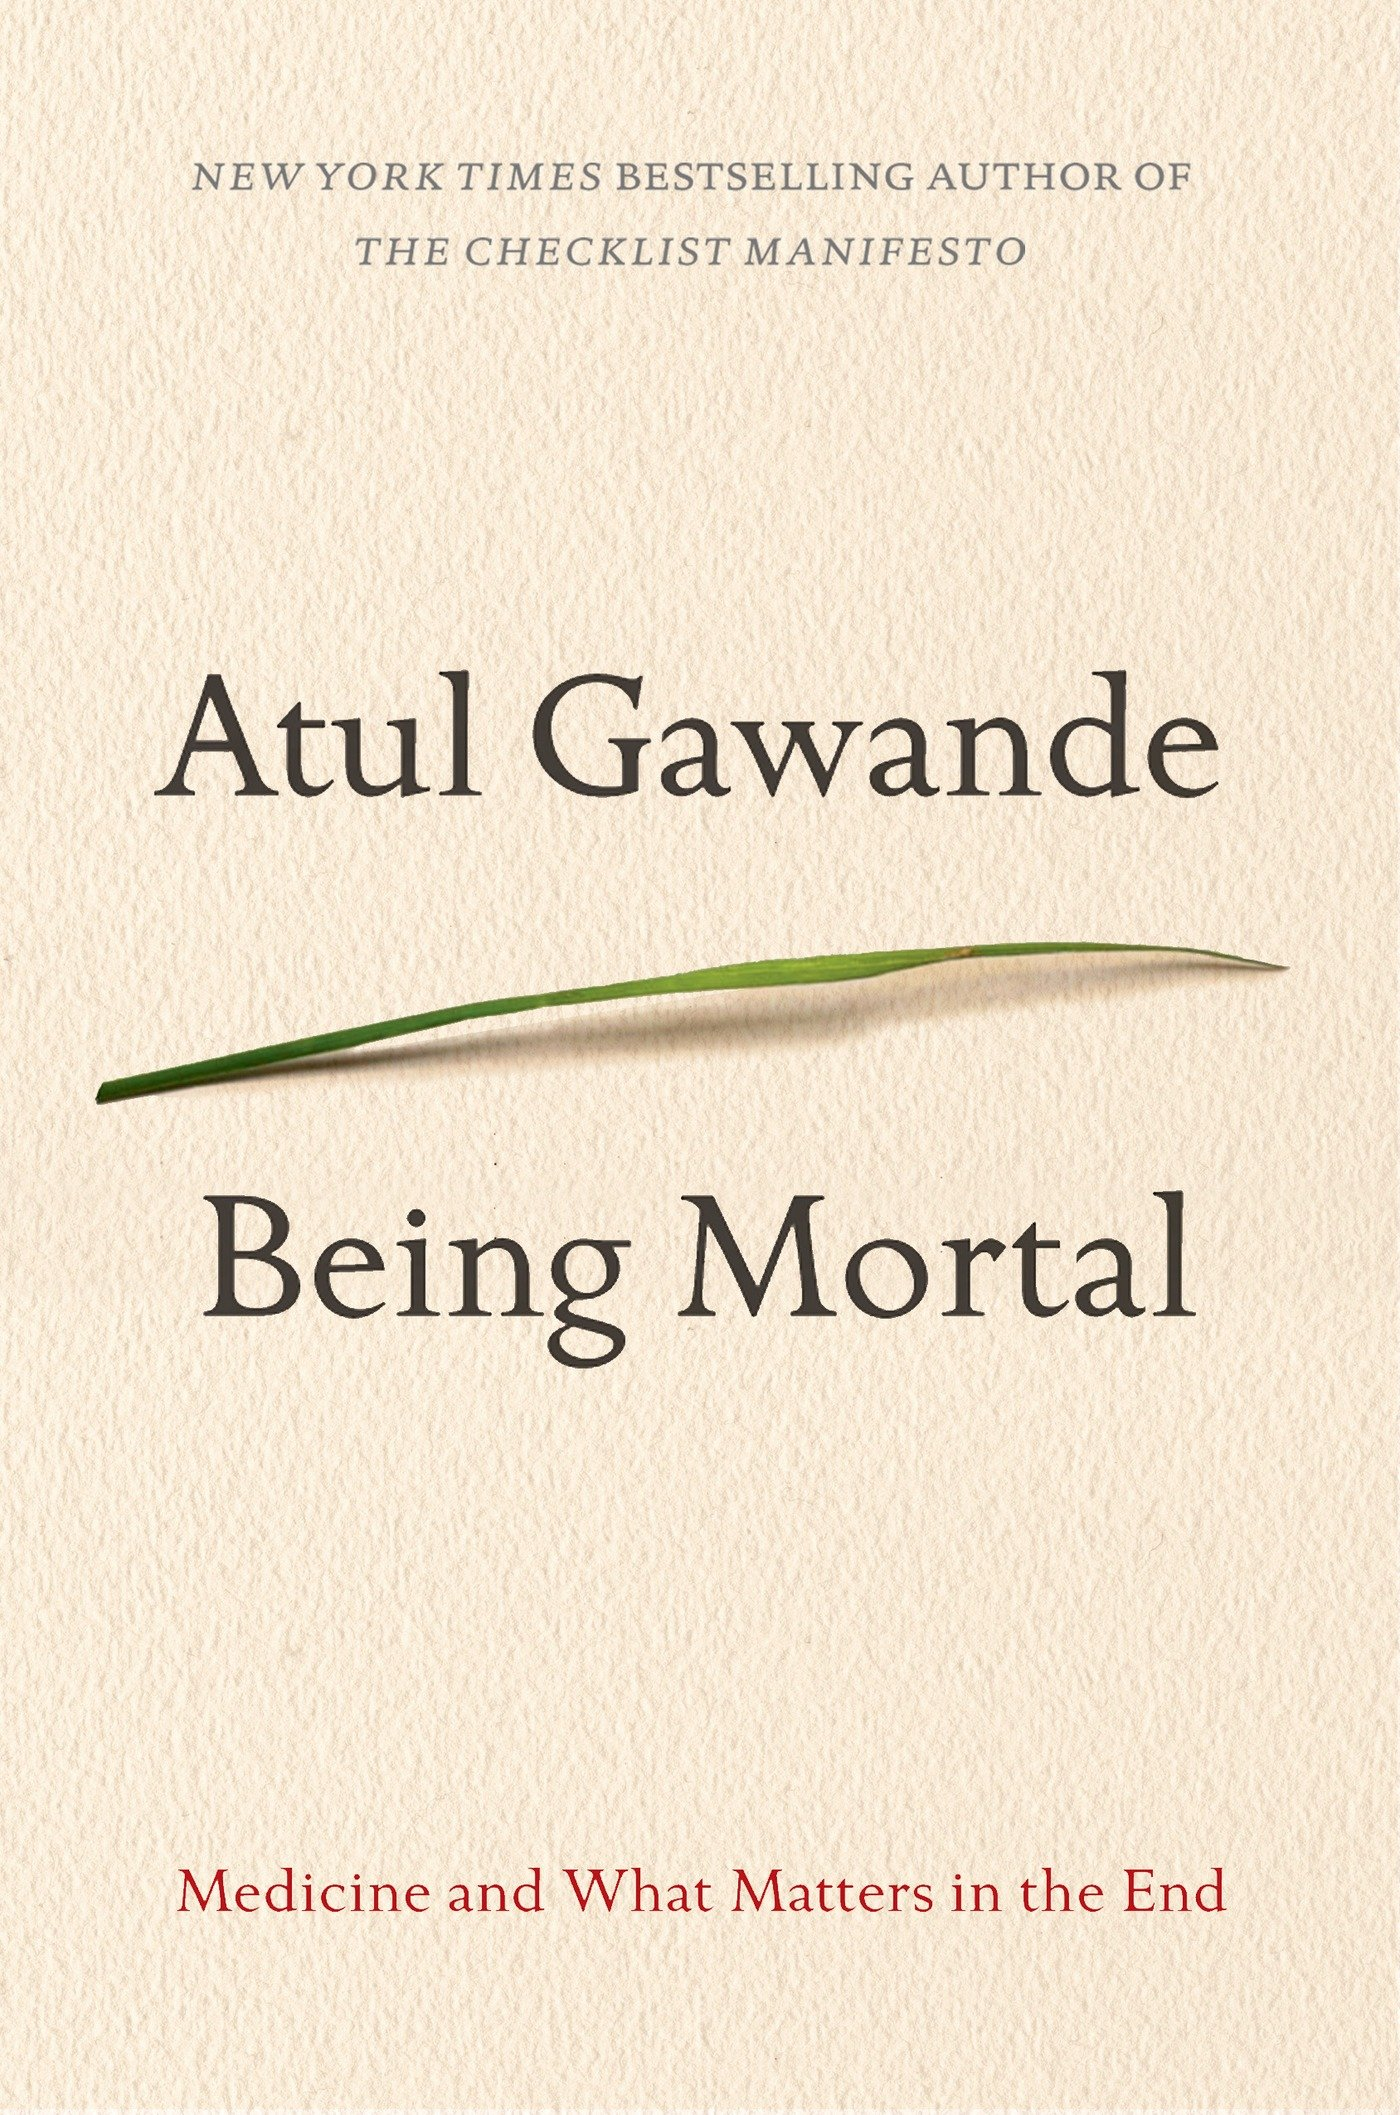 Being Mortal Atul Gawande